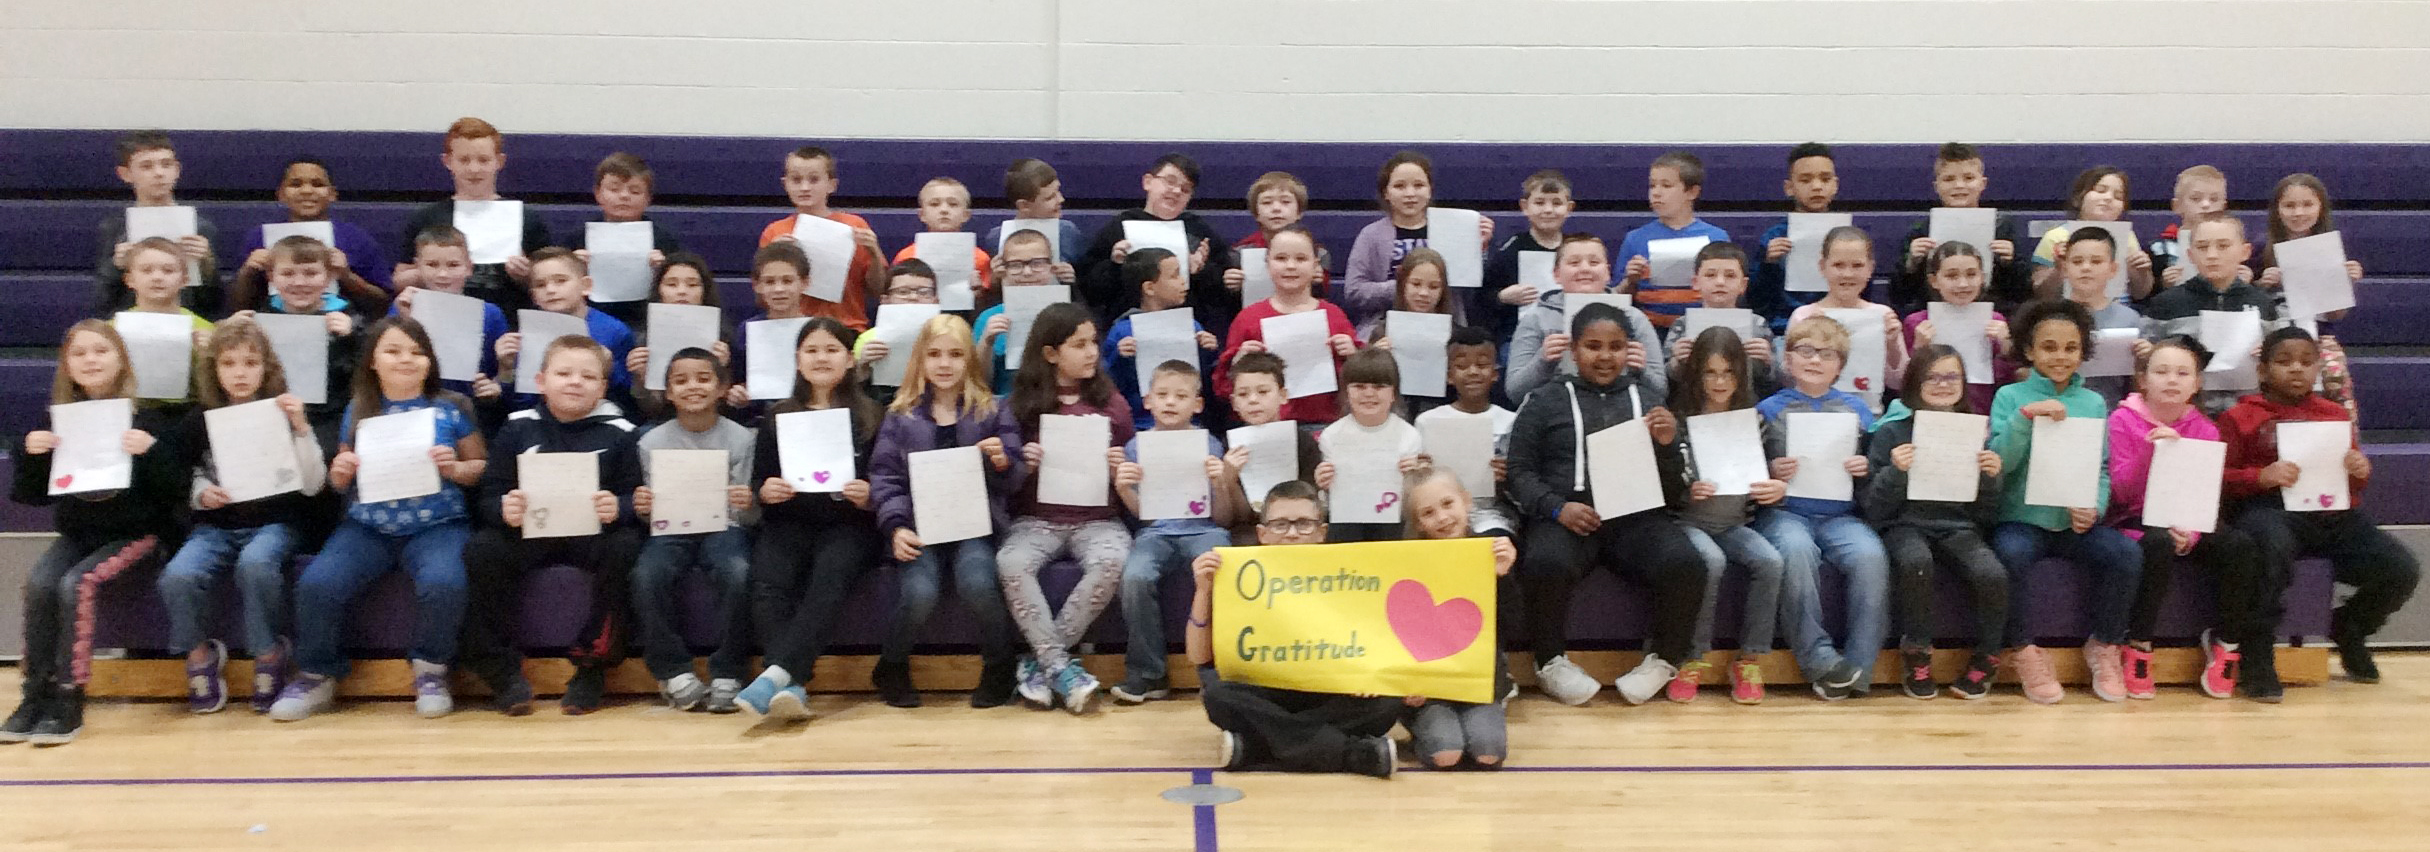 Campbellsville Elementary School third-graders recently wrote letters to be included in Operation Gratitude care packages.